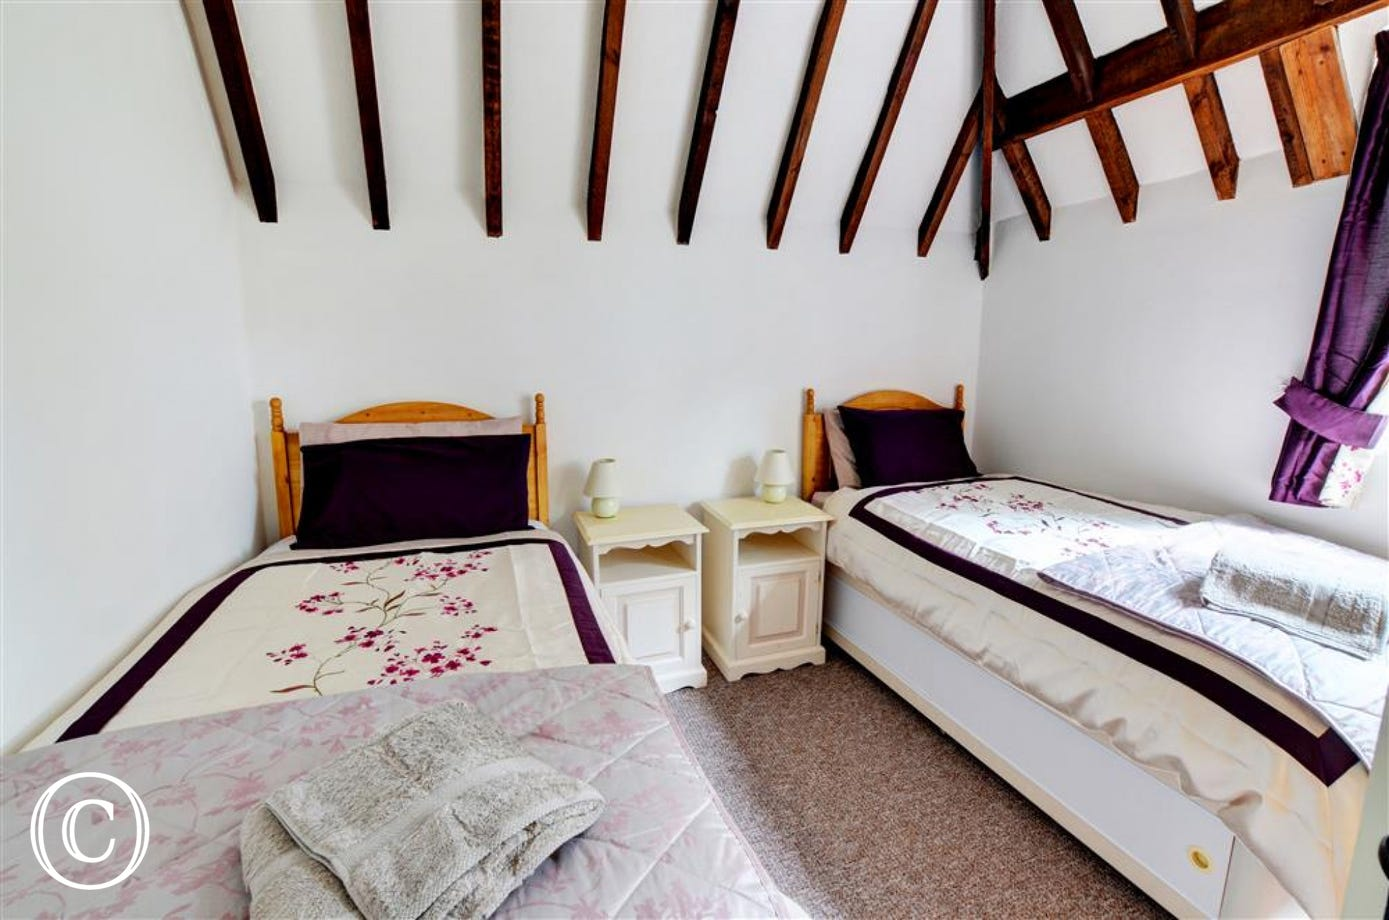 Bedroom two with twin beds and exposed beams